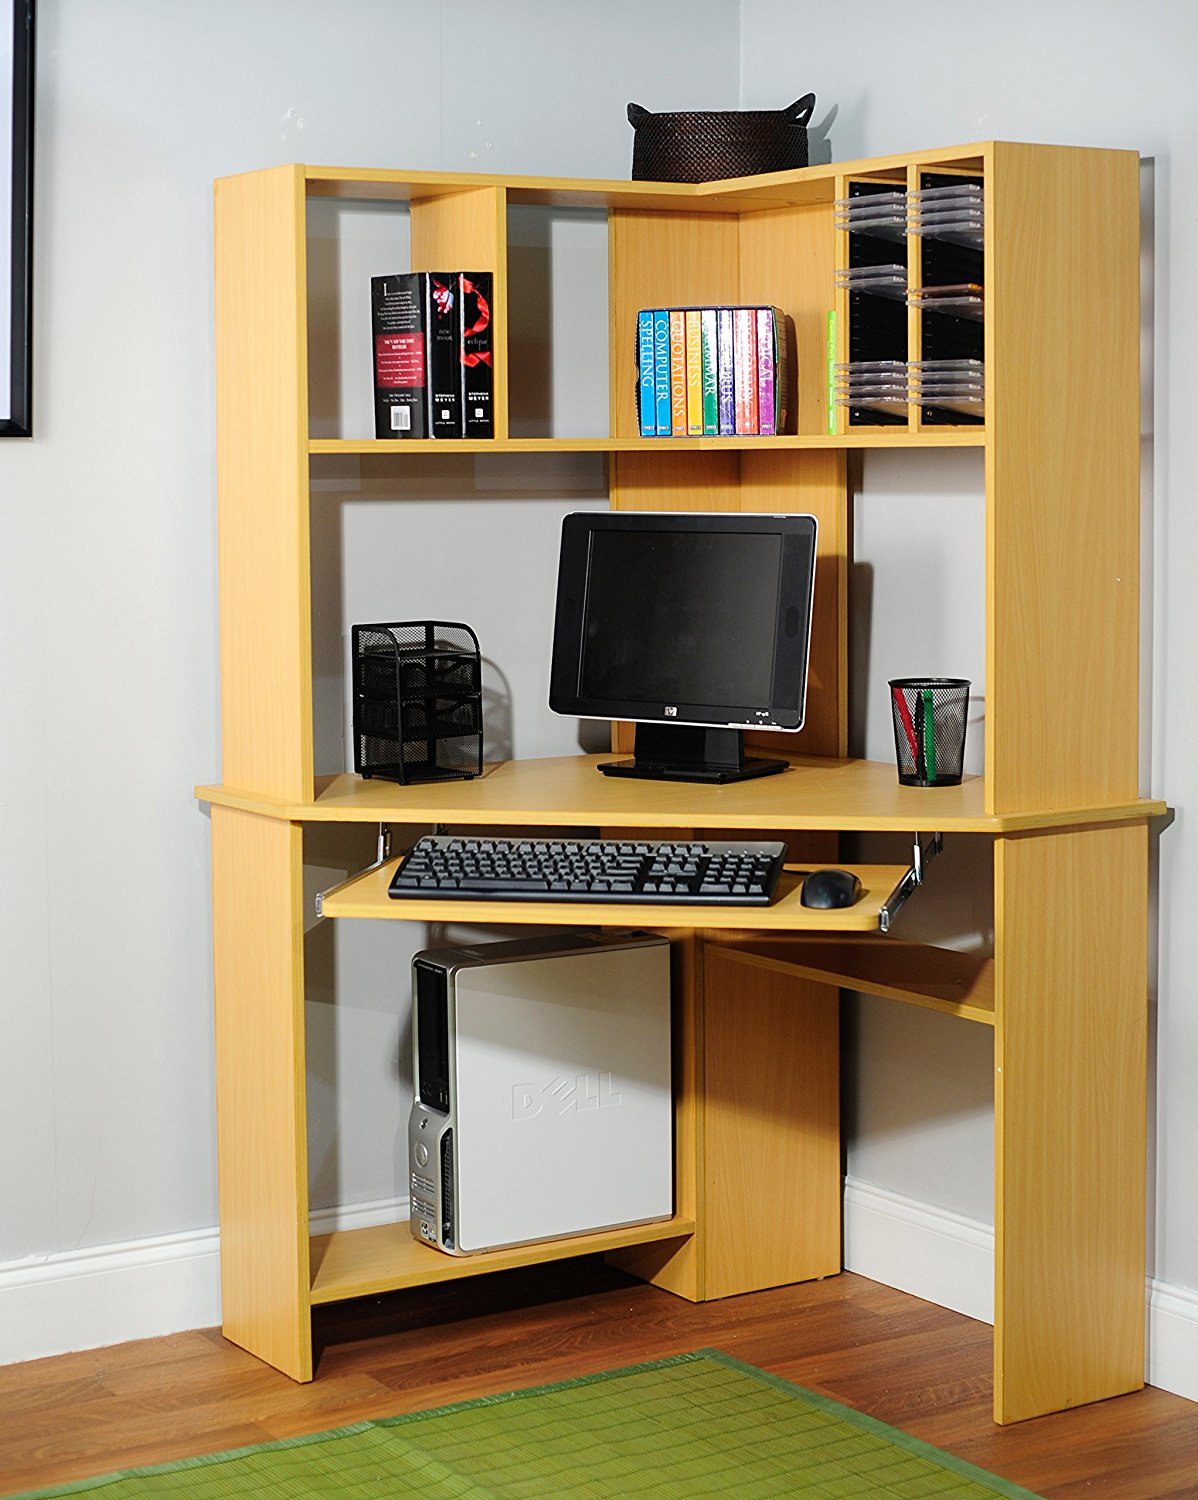 Target Marketing Systems Morgan Collection Ultra Modern Corner Computer Desk and Hutch With Keyboard Tray and CD/DVD Rack, Natural Wooden Finish